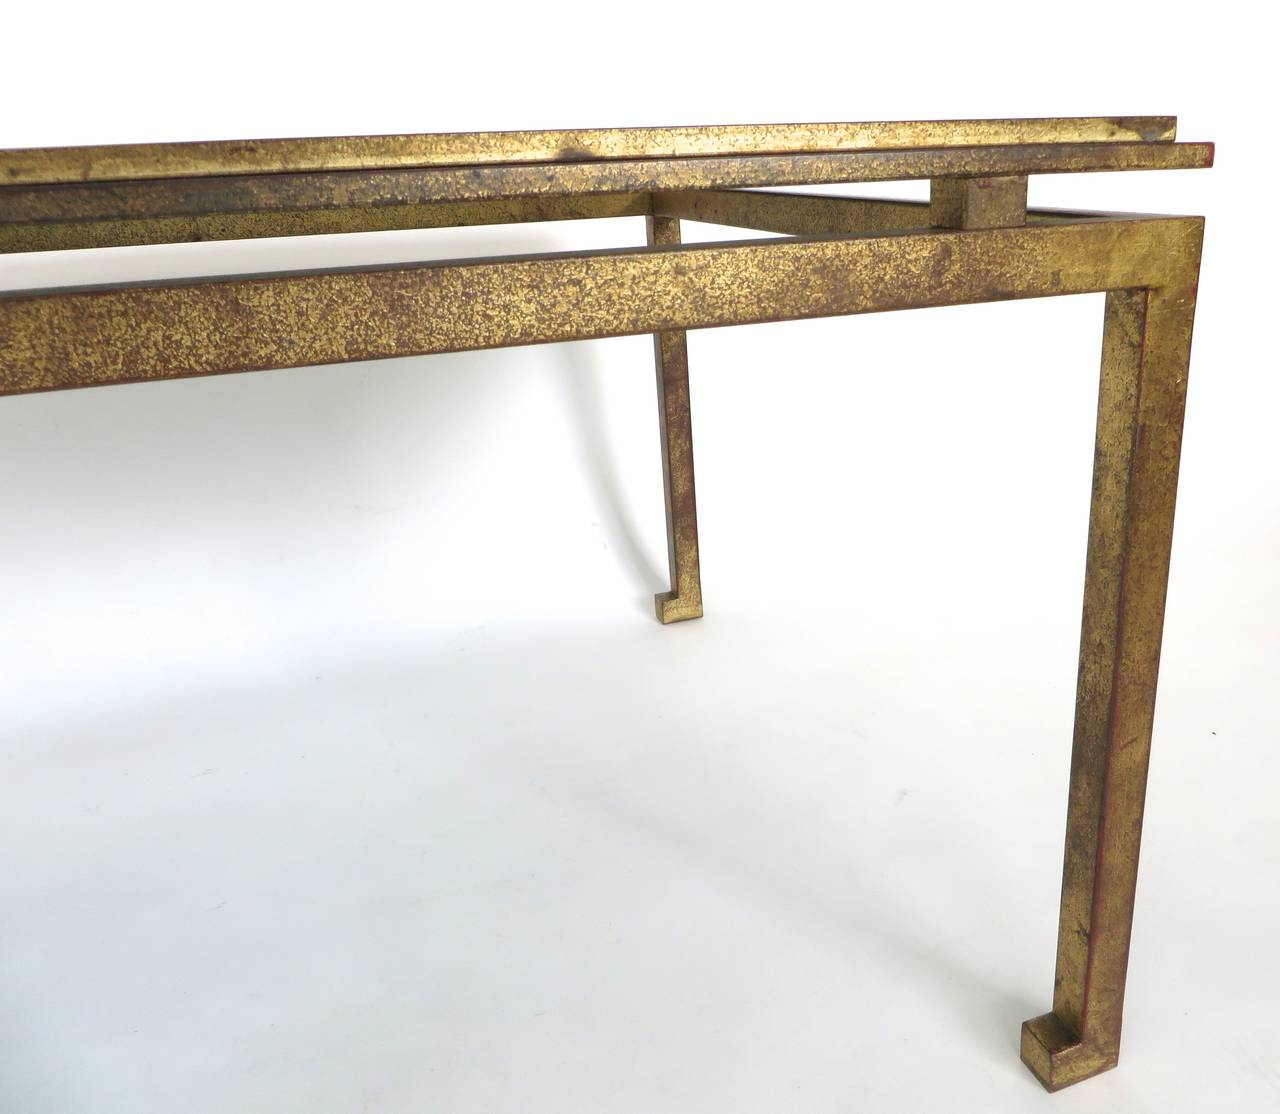 French Gold Coffee Table: Maison Ramsay French Patina Gold Leaf Wrought Iron Coffee